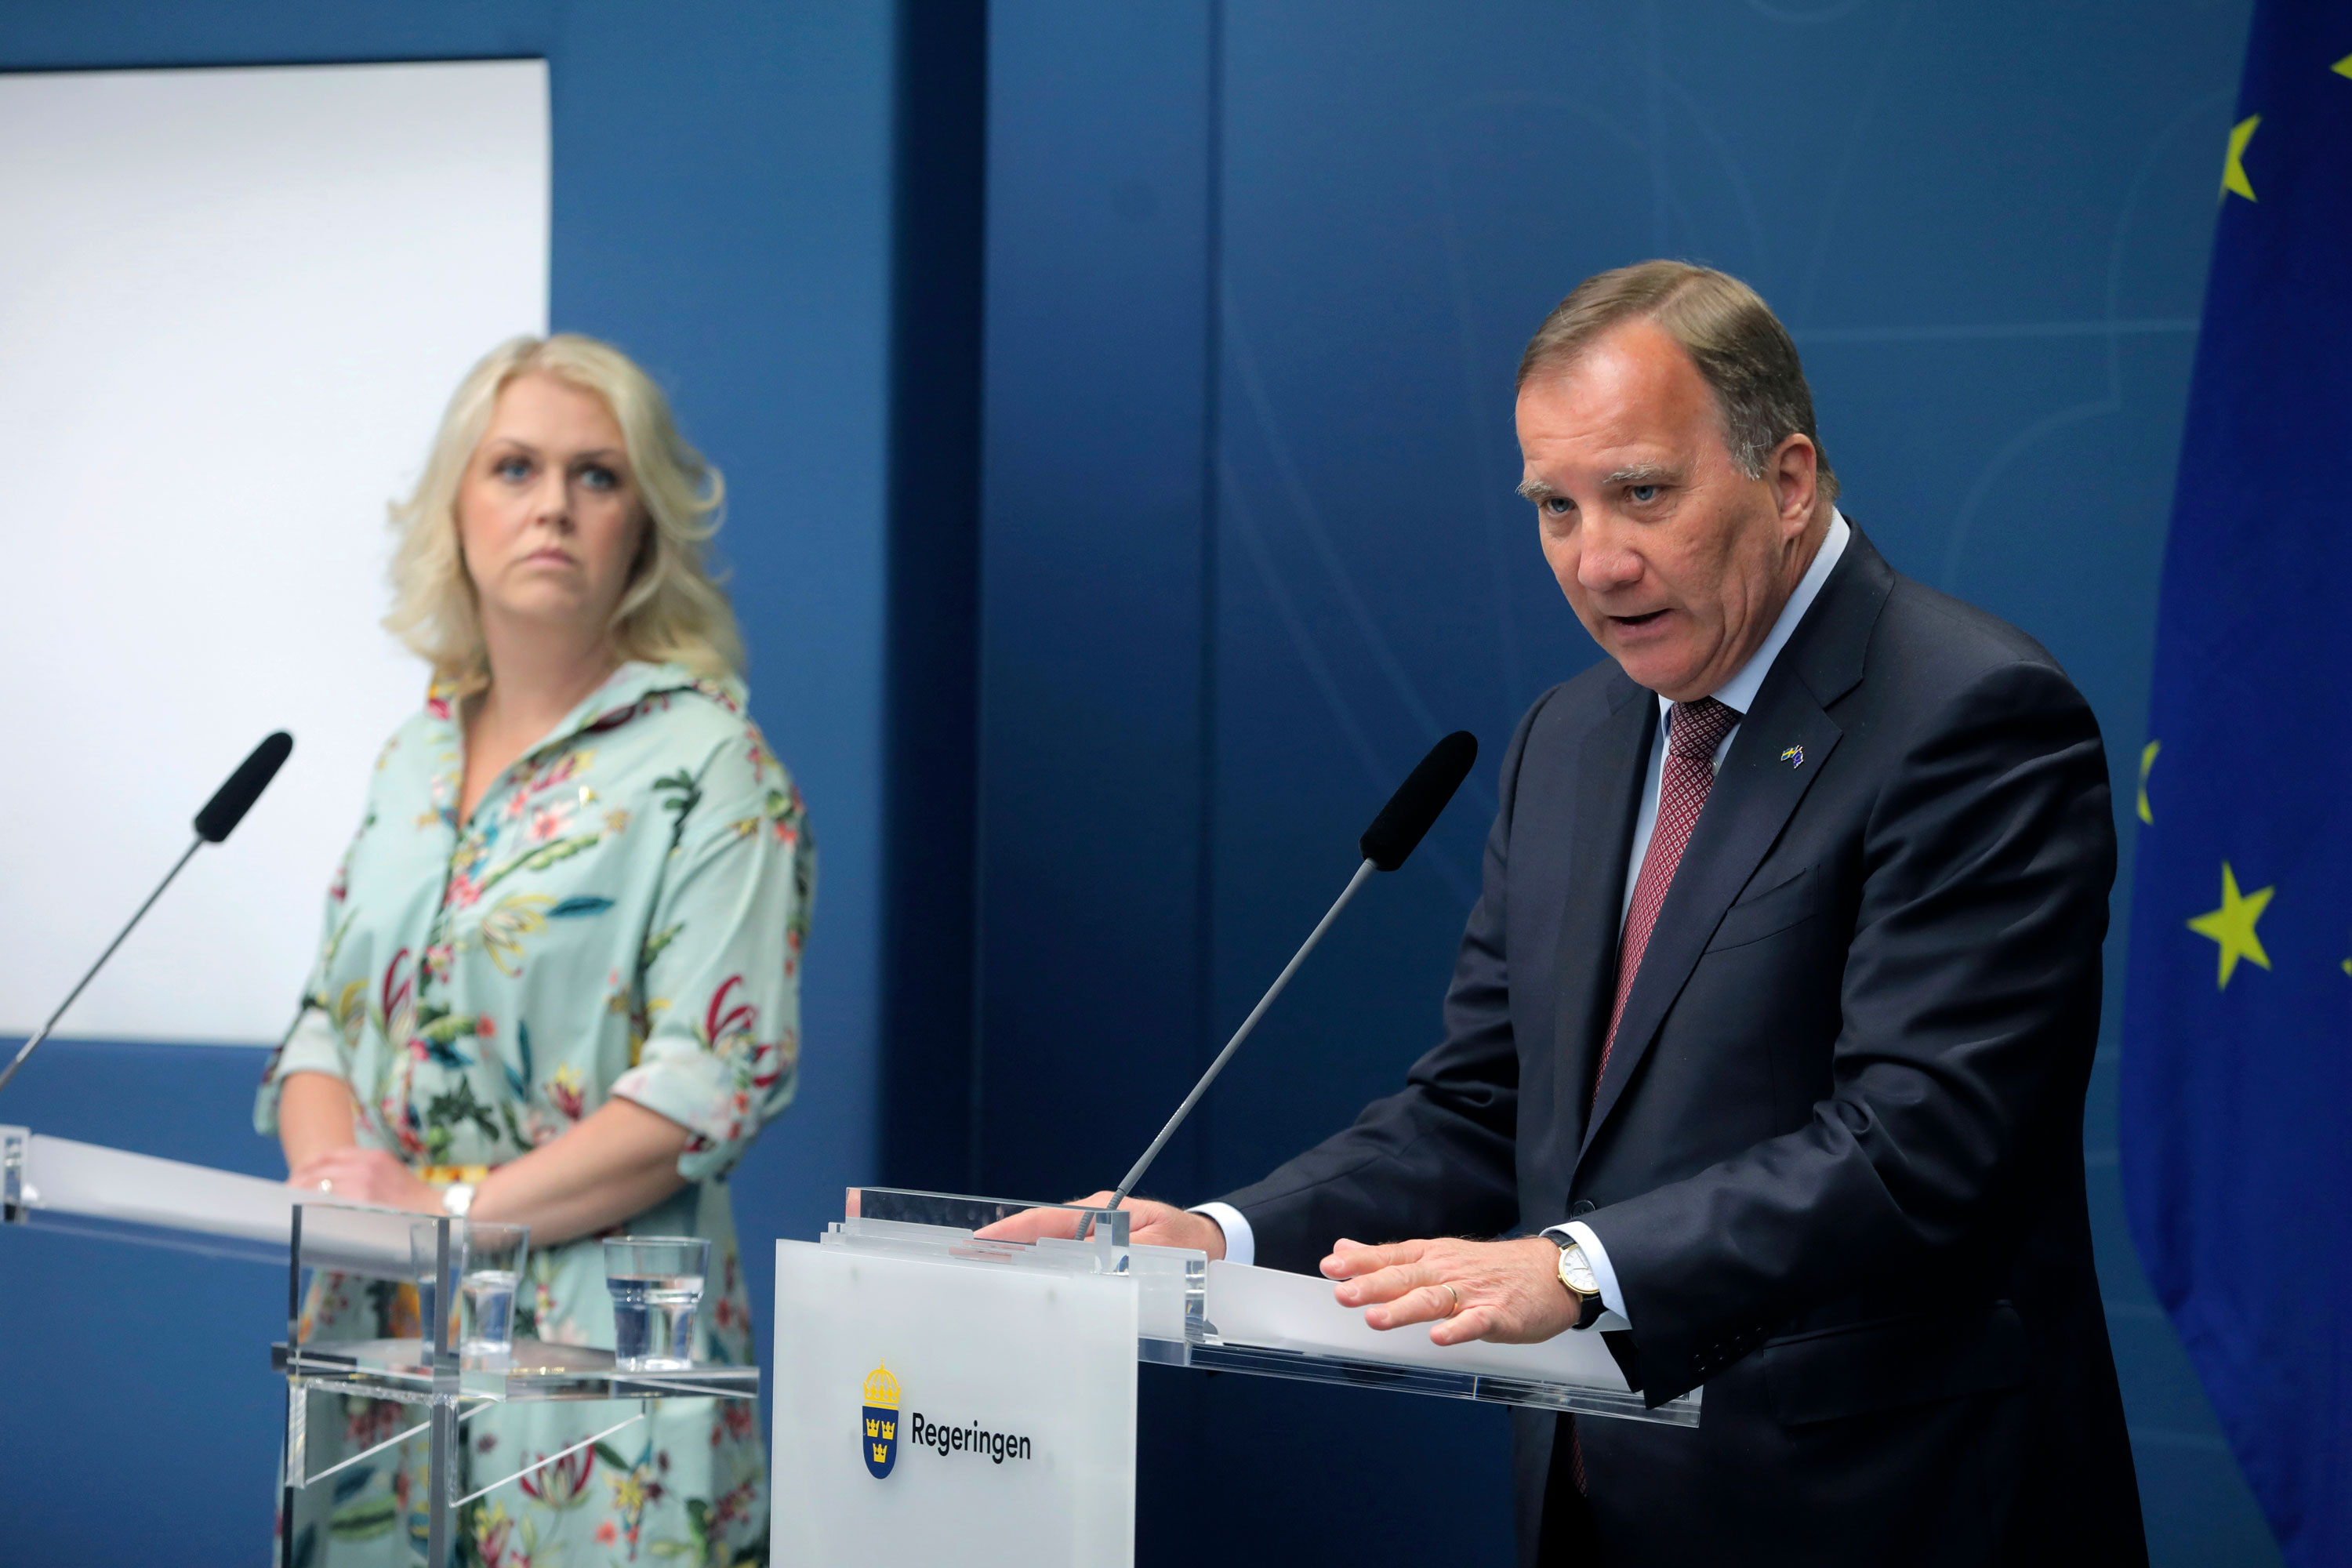 Sweden's Prime Minister Stefan Lofven, right, hold a news conference with Social Minister Lena Hallengren, in the Government Offices in Stockholm, Sweden, on June 4.